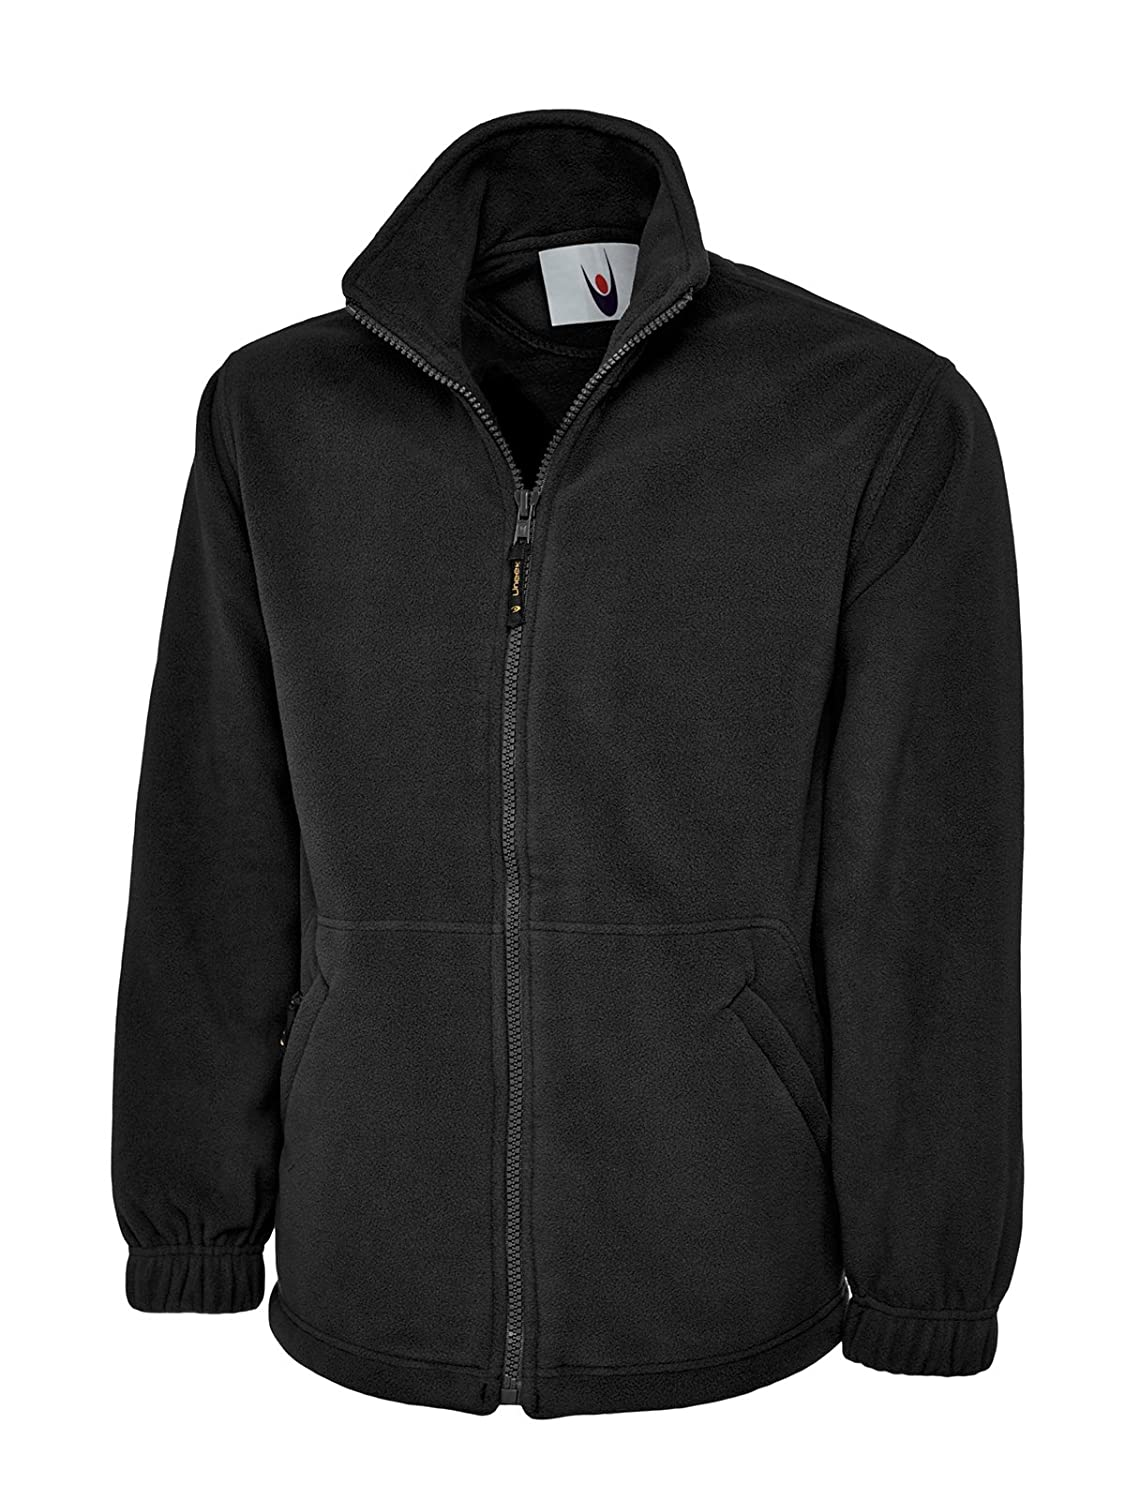 Uneek Clothing-Mens-Premium Full Zip Micro Fleece Jacket-380 gsm-Black-M Starlite UC601